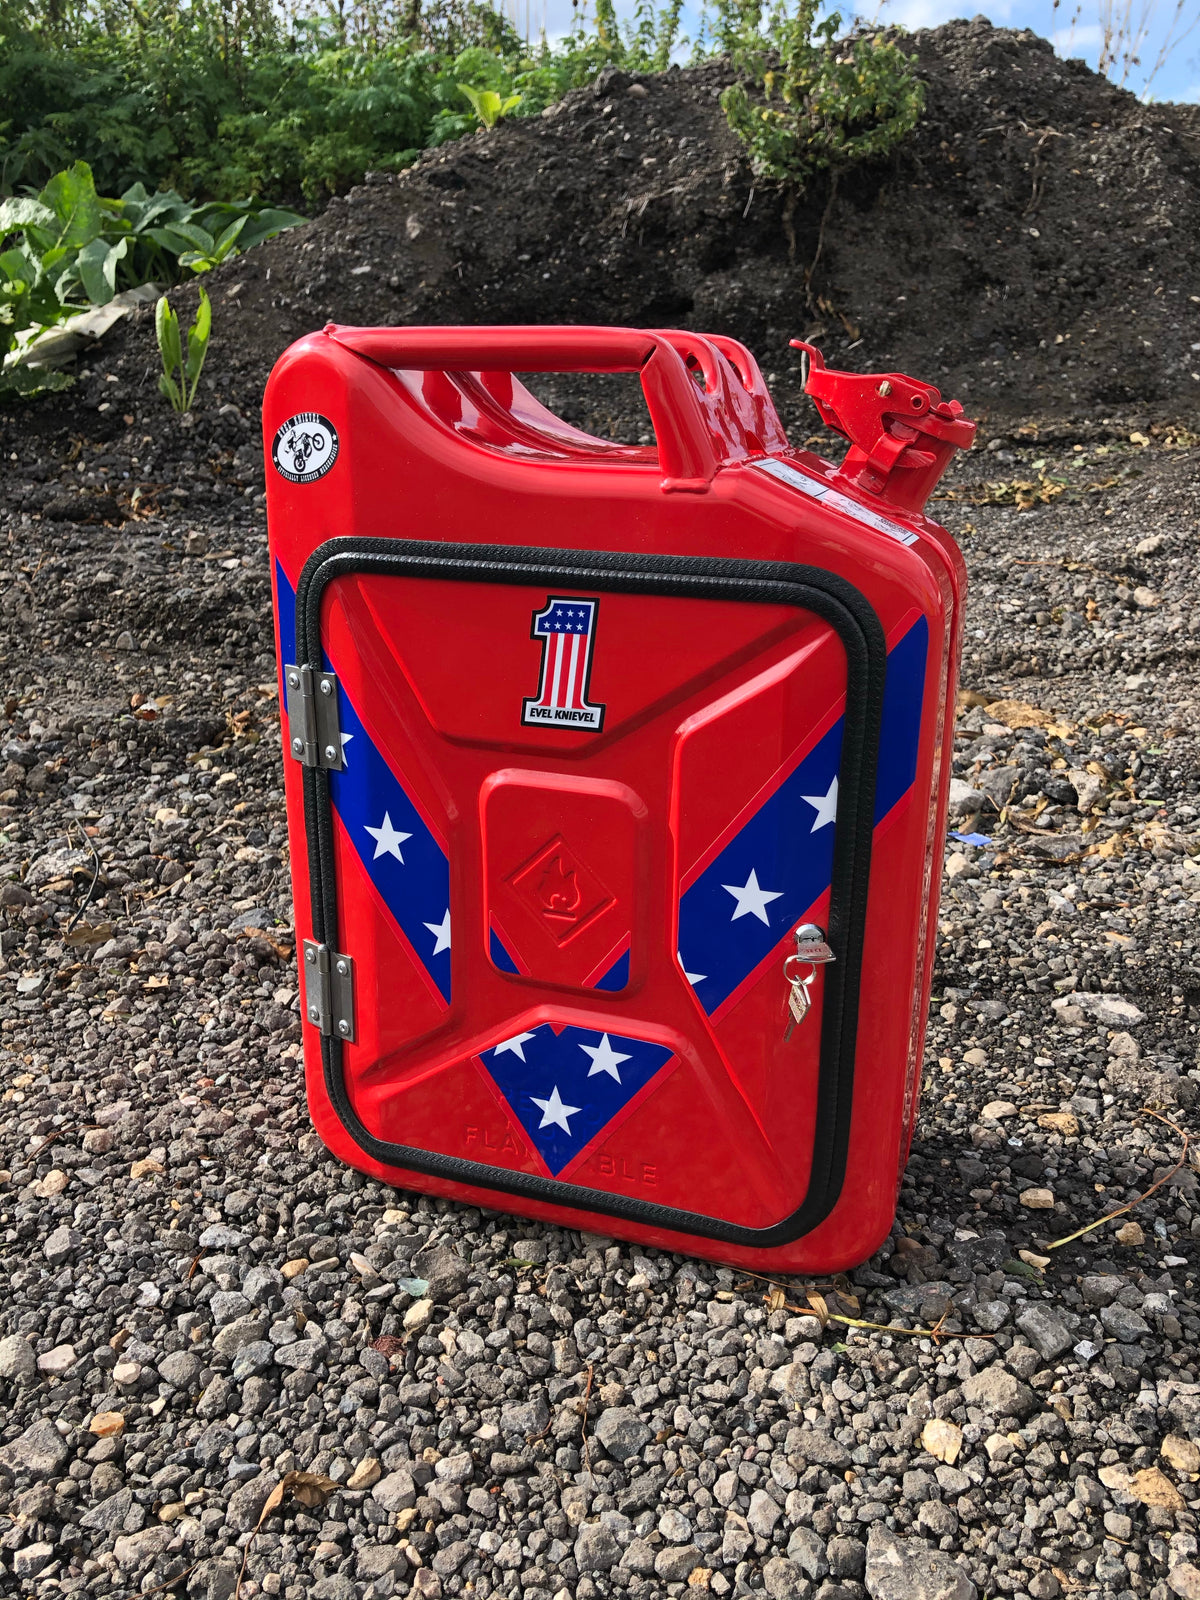 Red Evel Knievel Jerry can craft beer/soft drink bar(licensed)